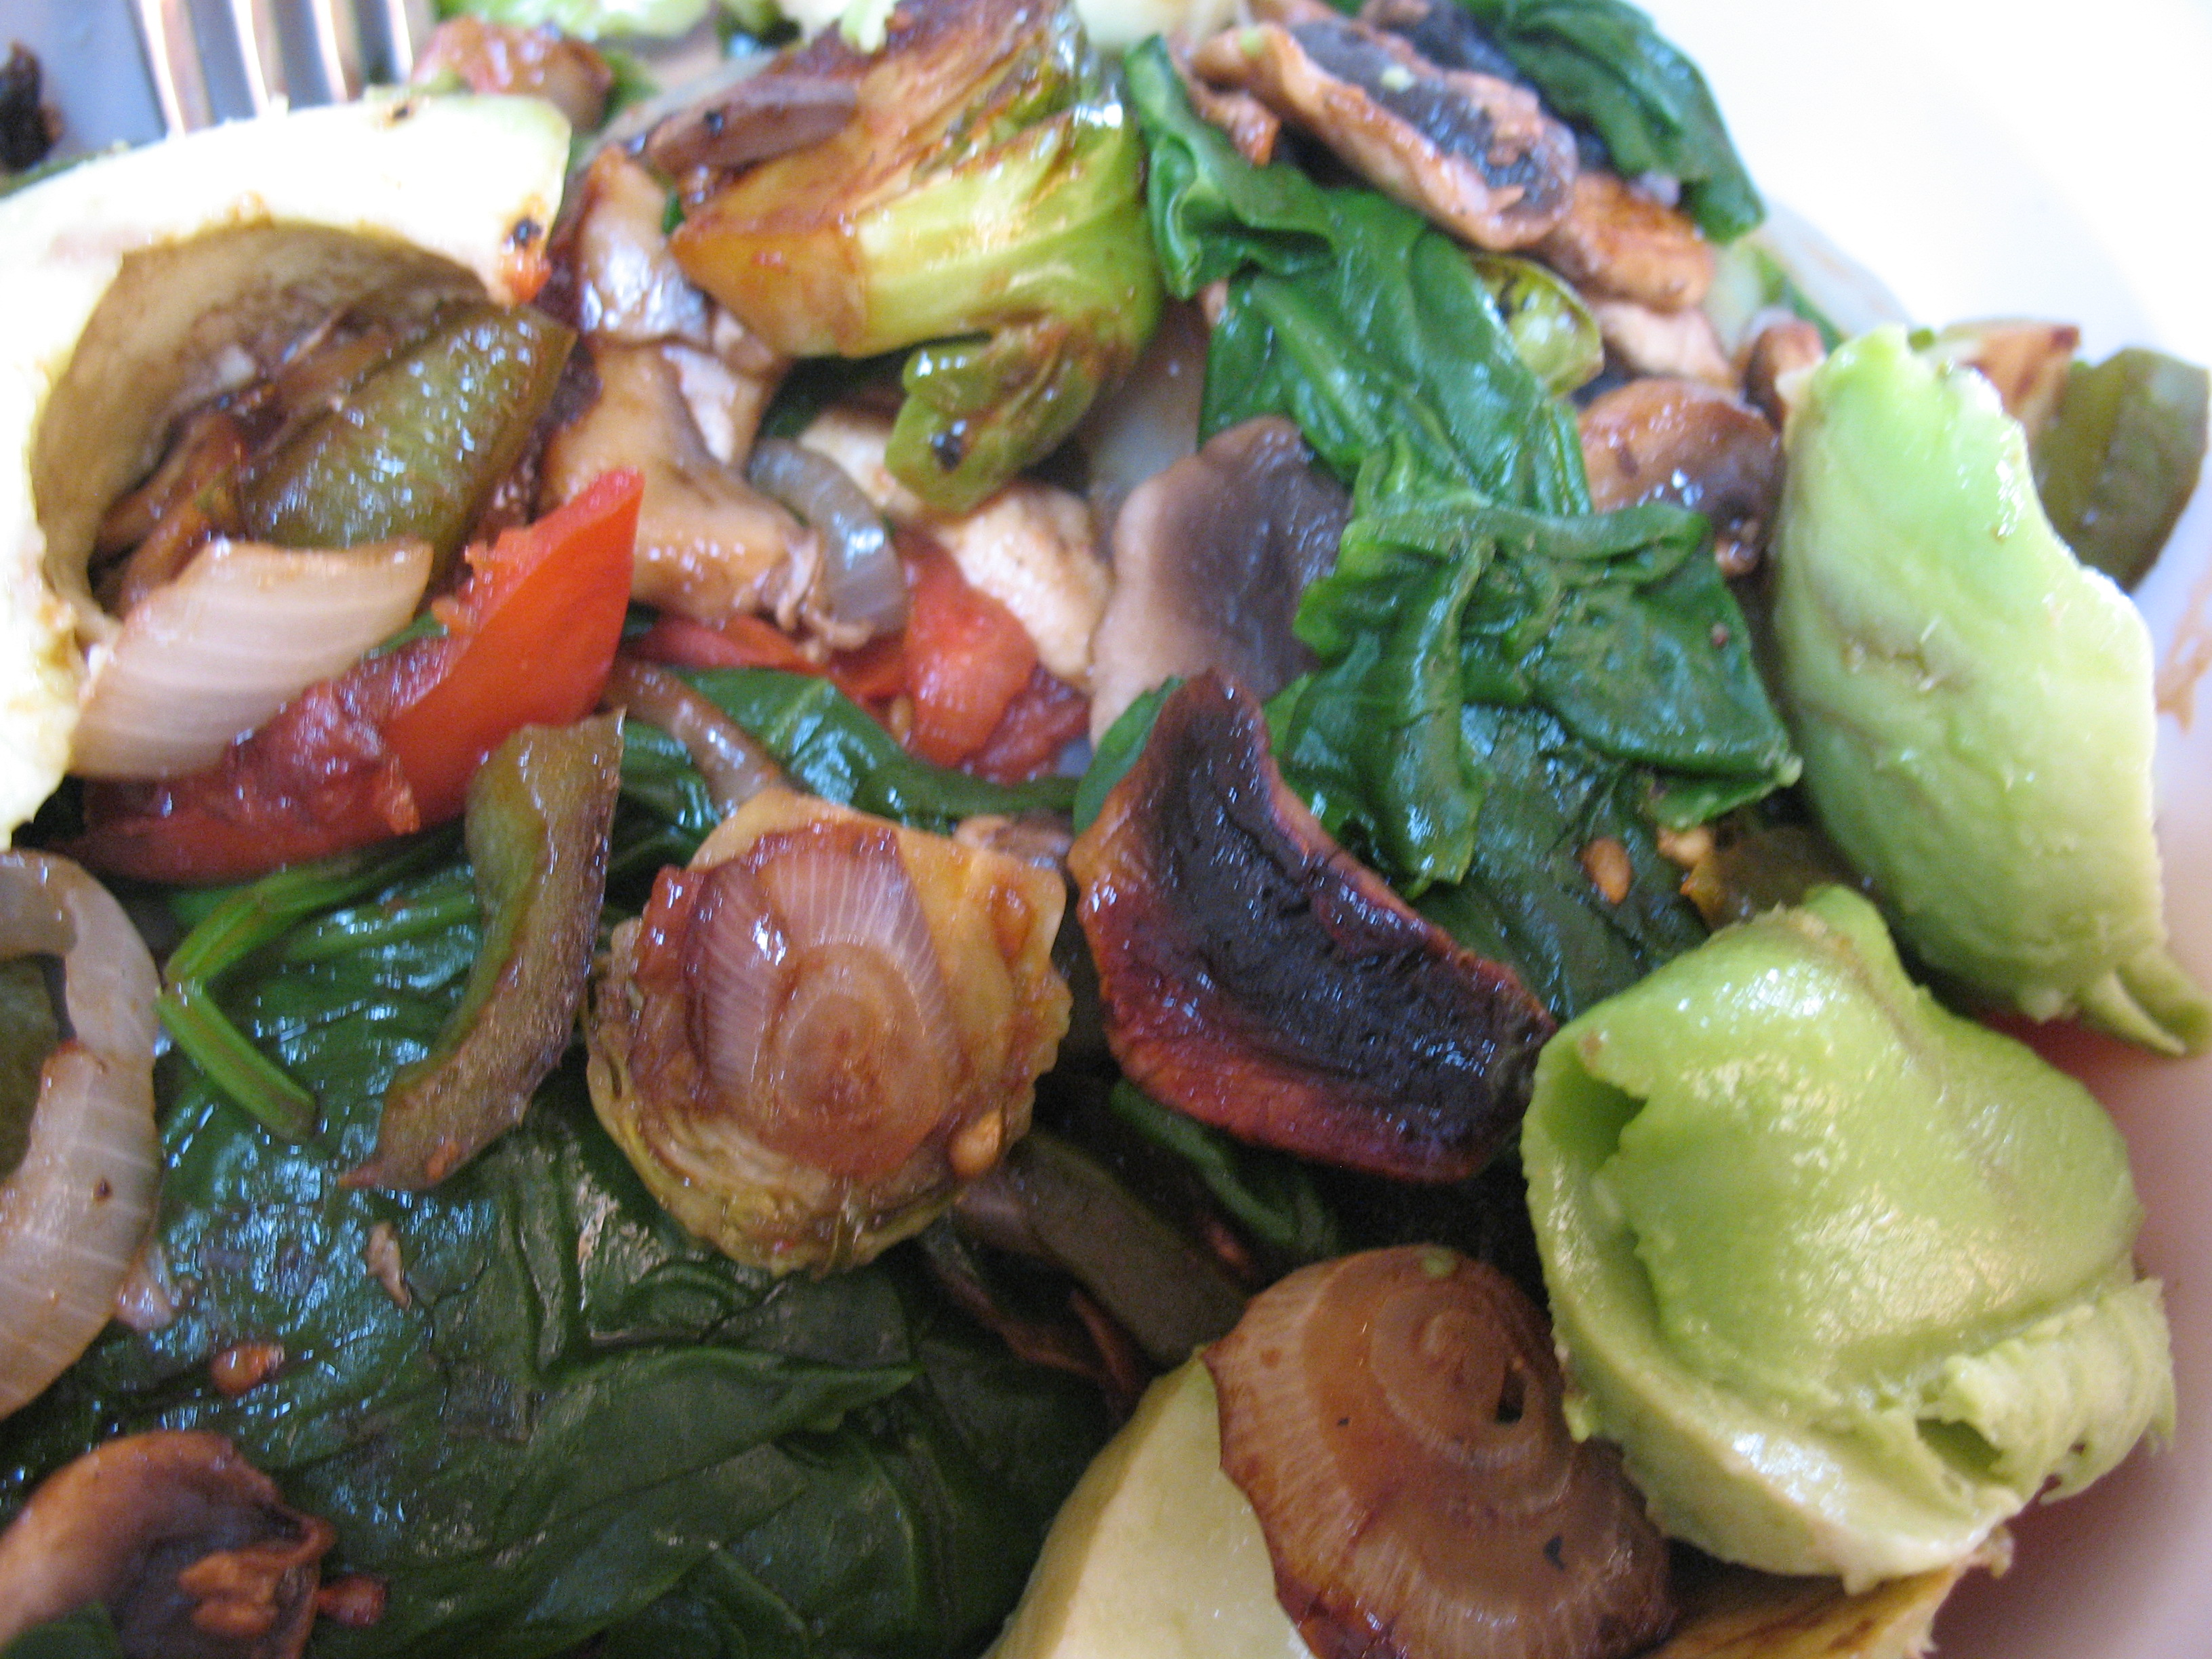 Veggie stir-fry with chopped avocado.